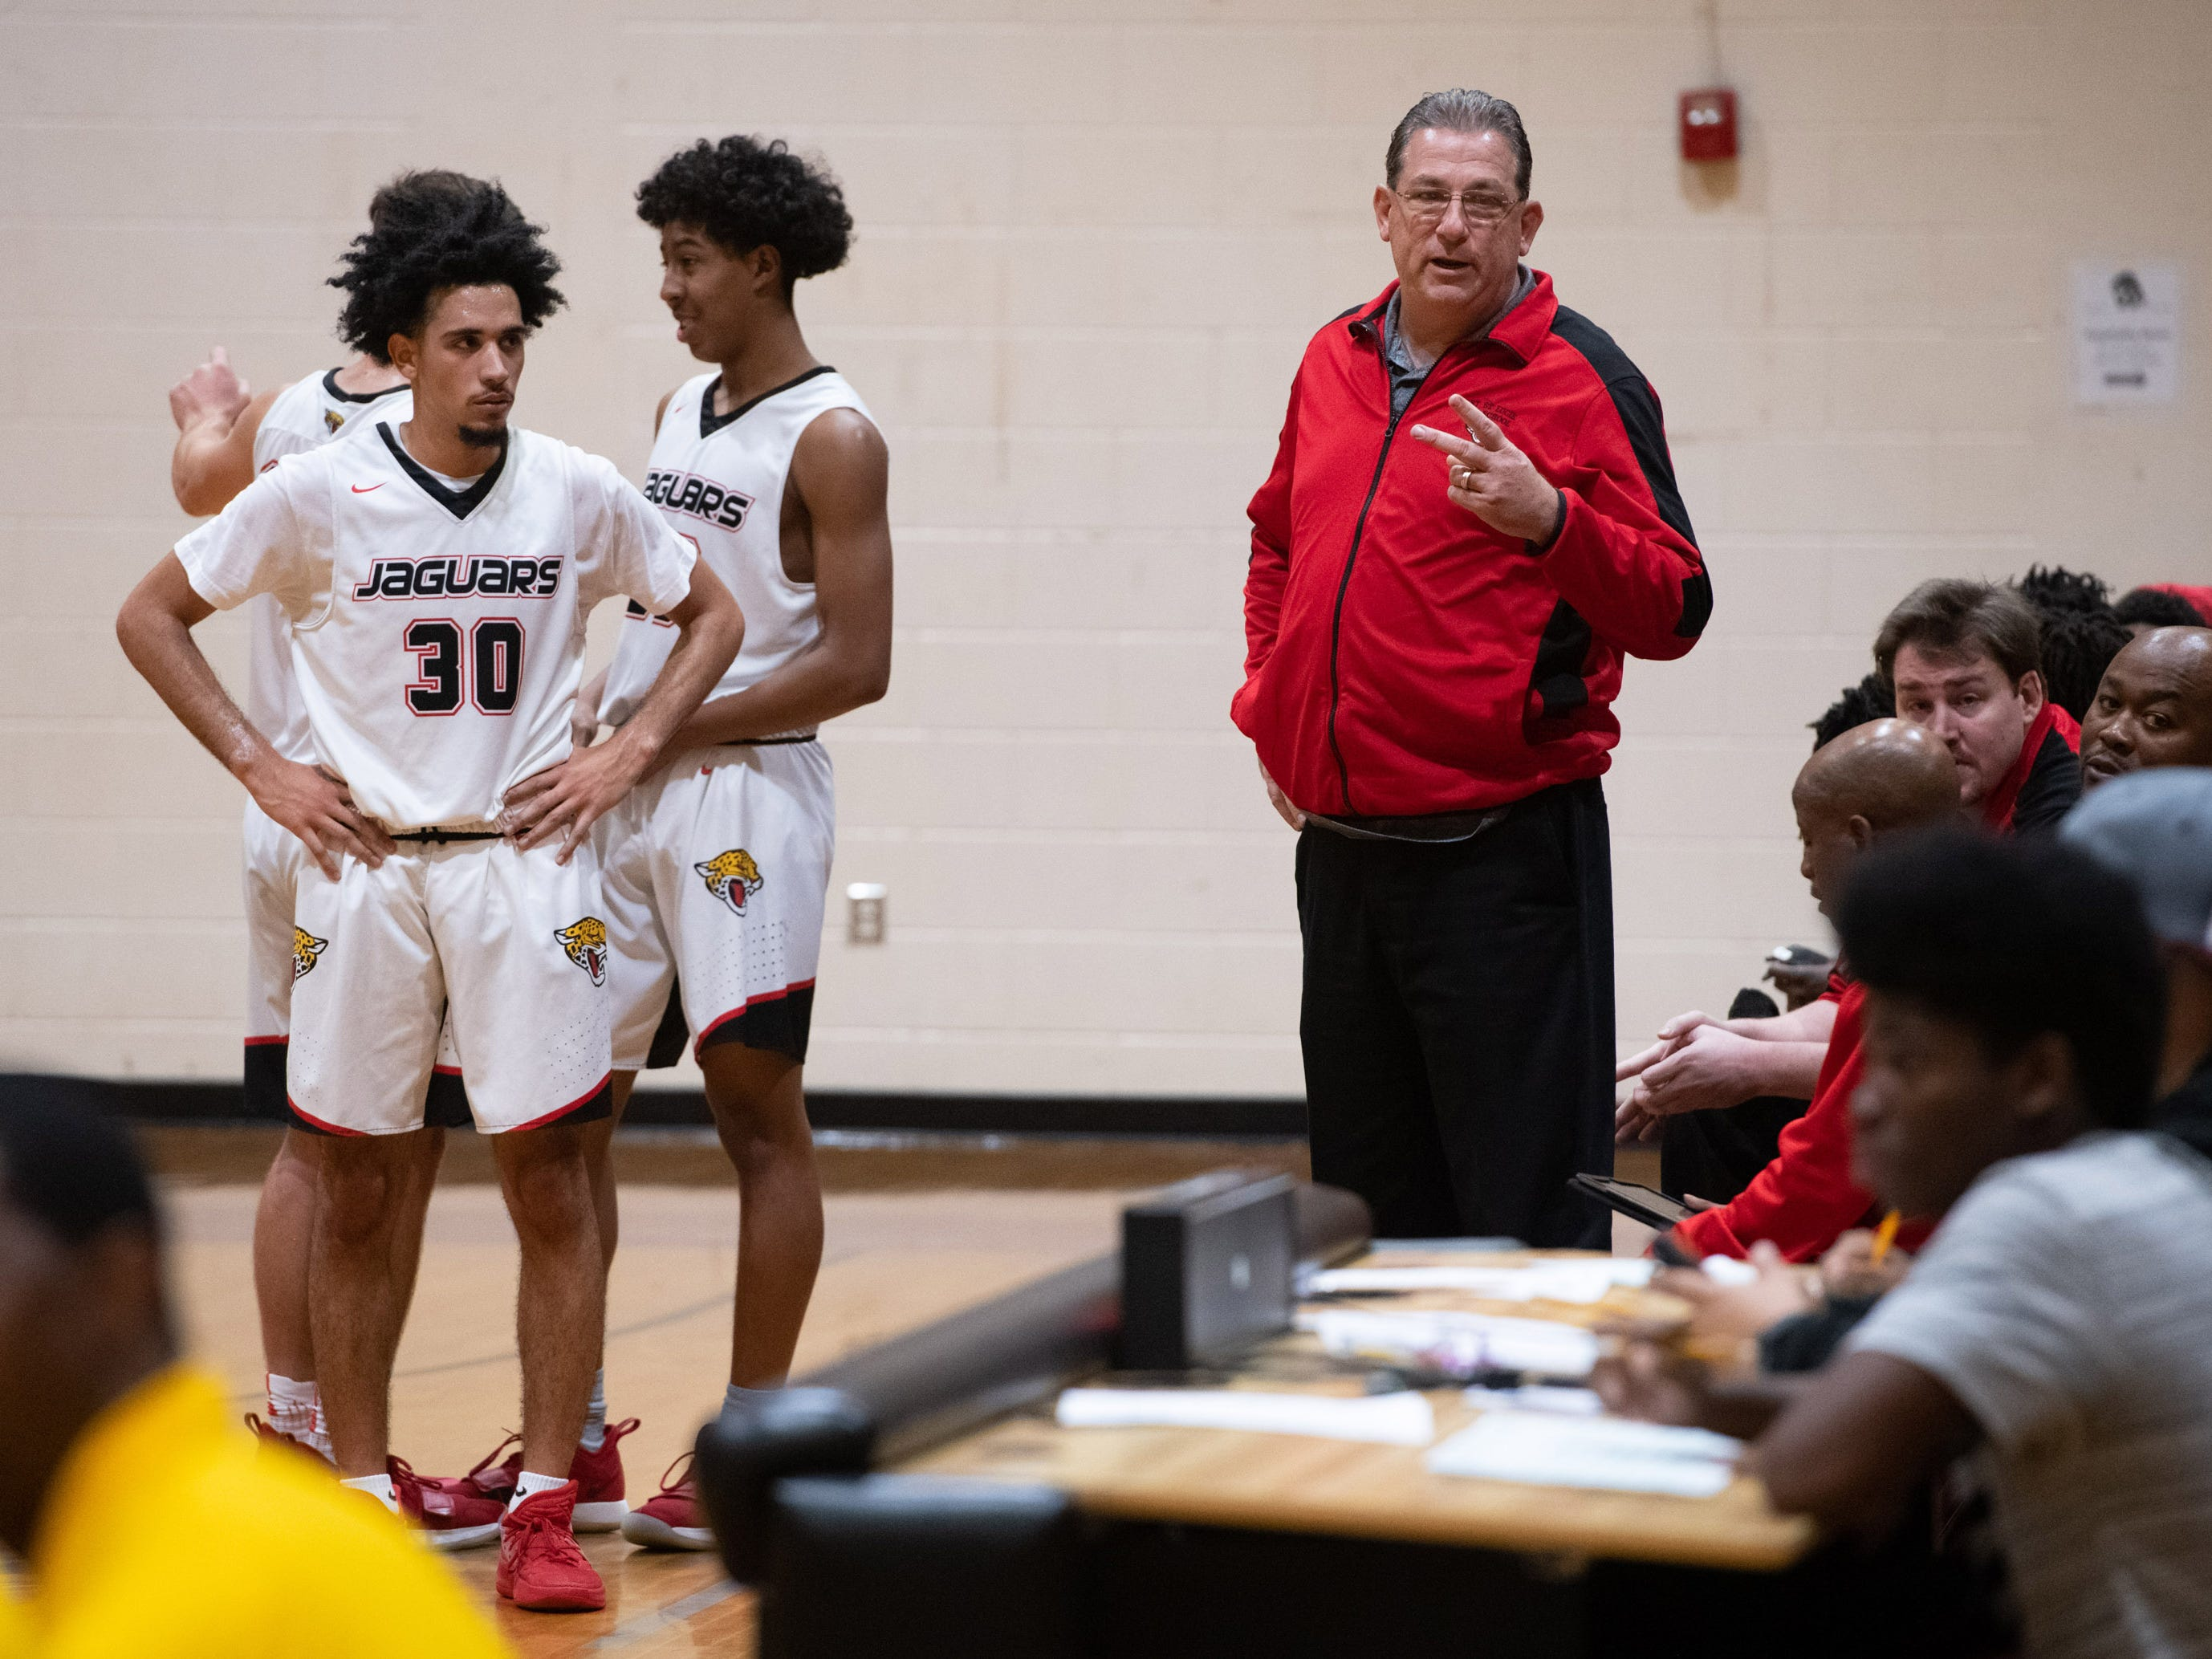 The District 15-6A boys basketball district championship game between Port St. Lucie High School and Suncoast Community High School was played at Fort Pierce Westwood High School on Friday, Feb. 15, 2019, in Fort Pierce.